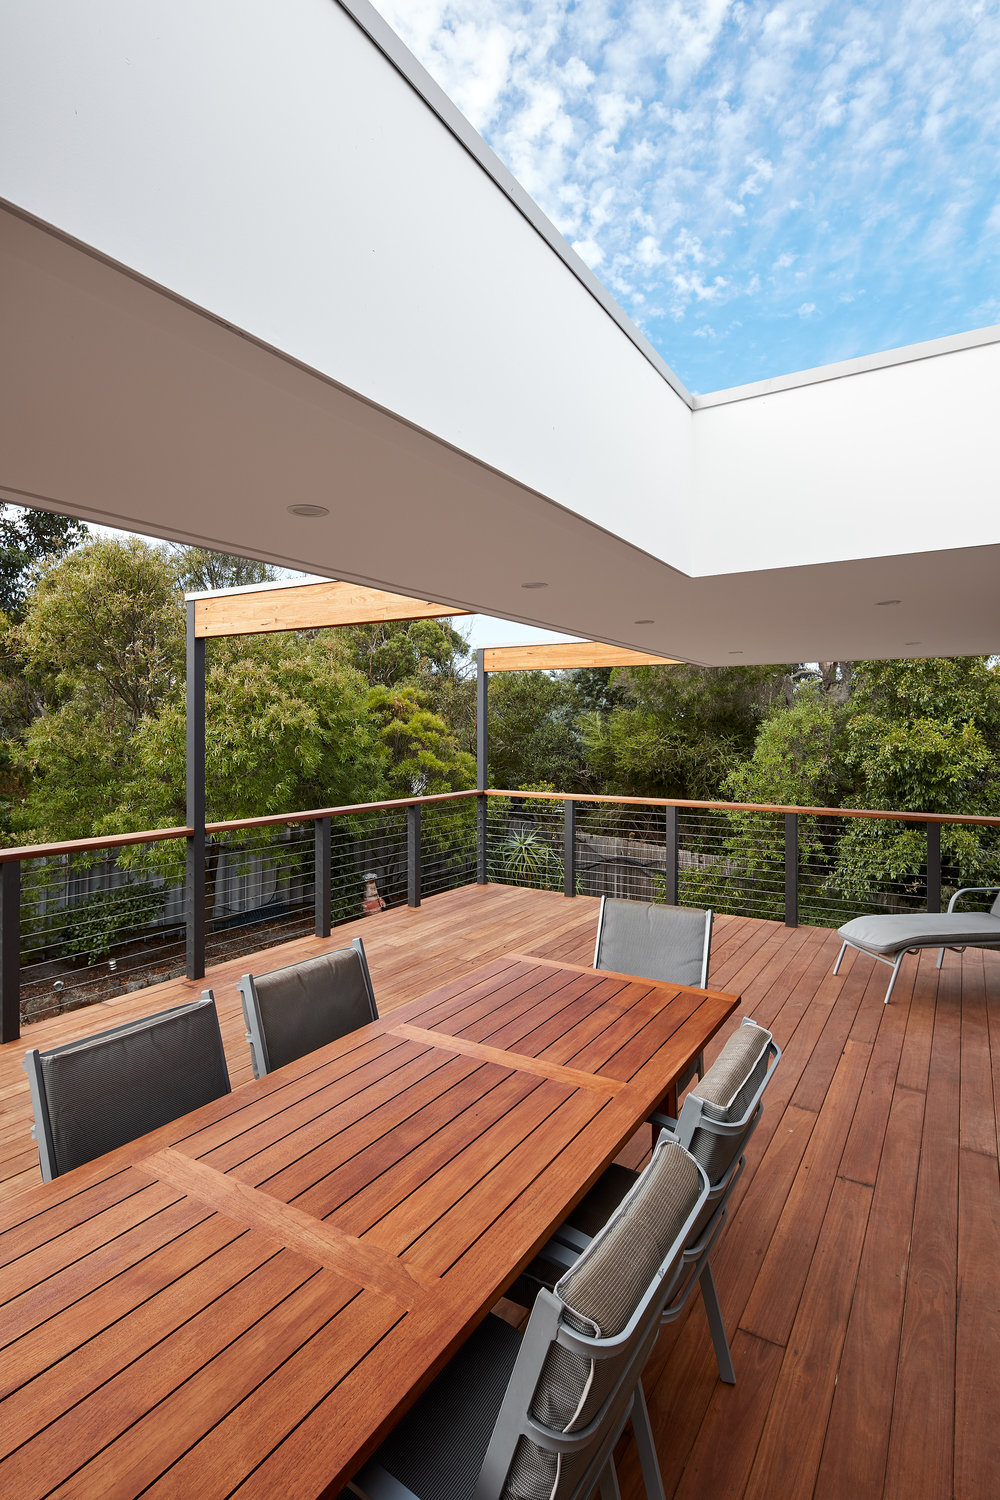 nathan-k-davis-architecture-architectural-photography-interior-exterior-residential-surfcoast-anglesea-house-7